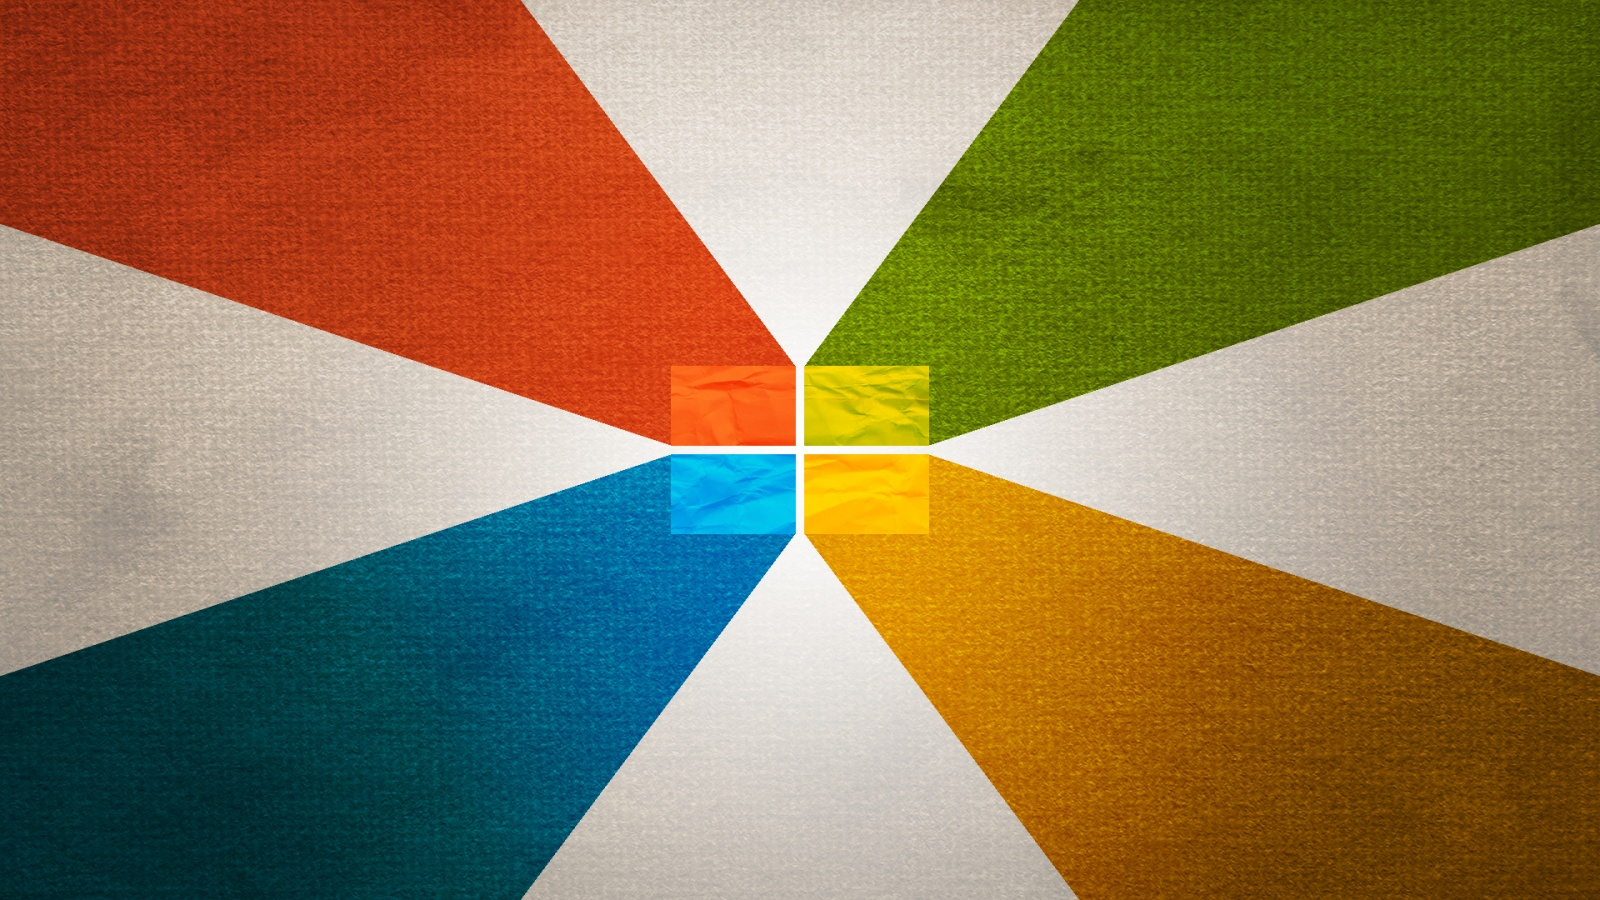 Microsoft Color Technology